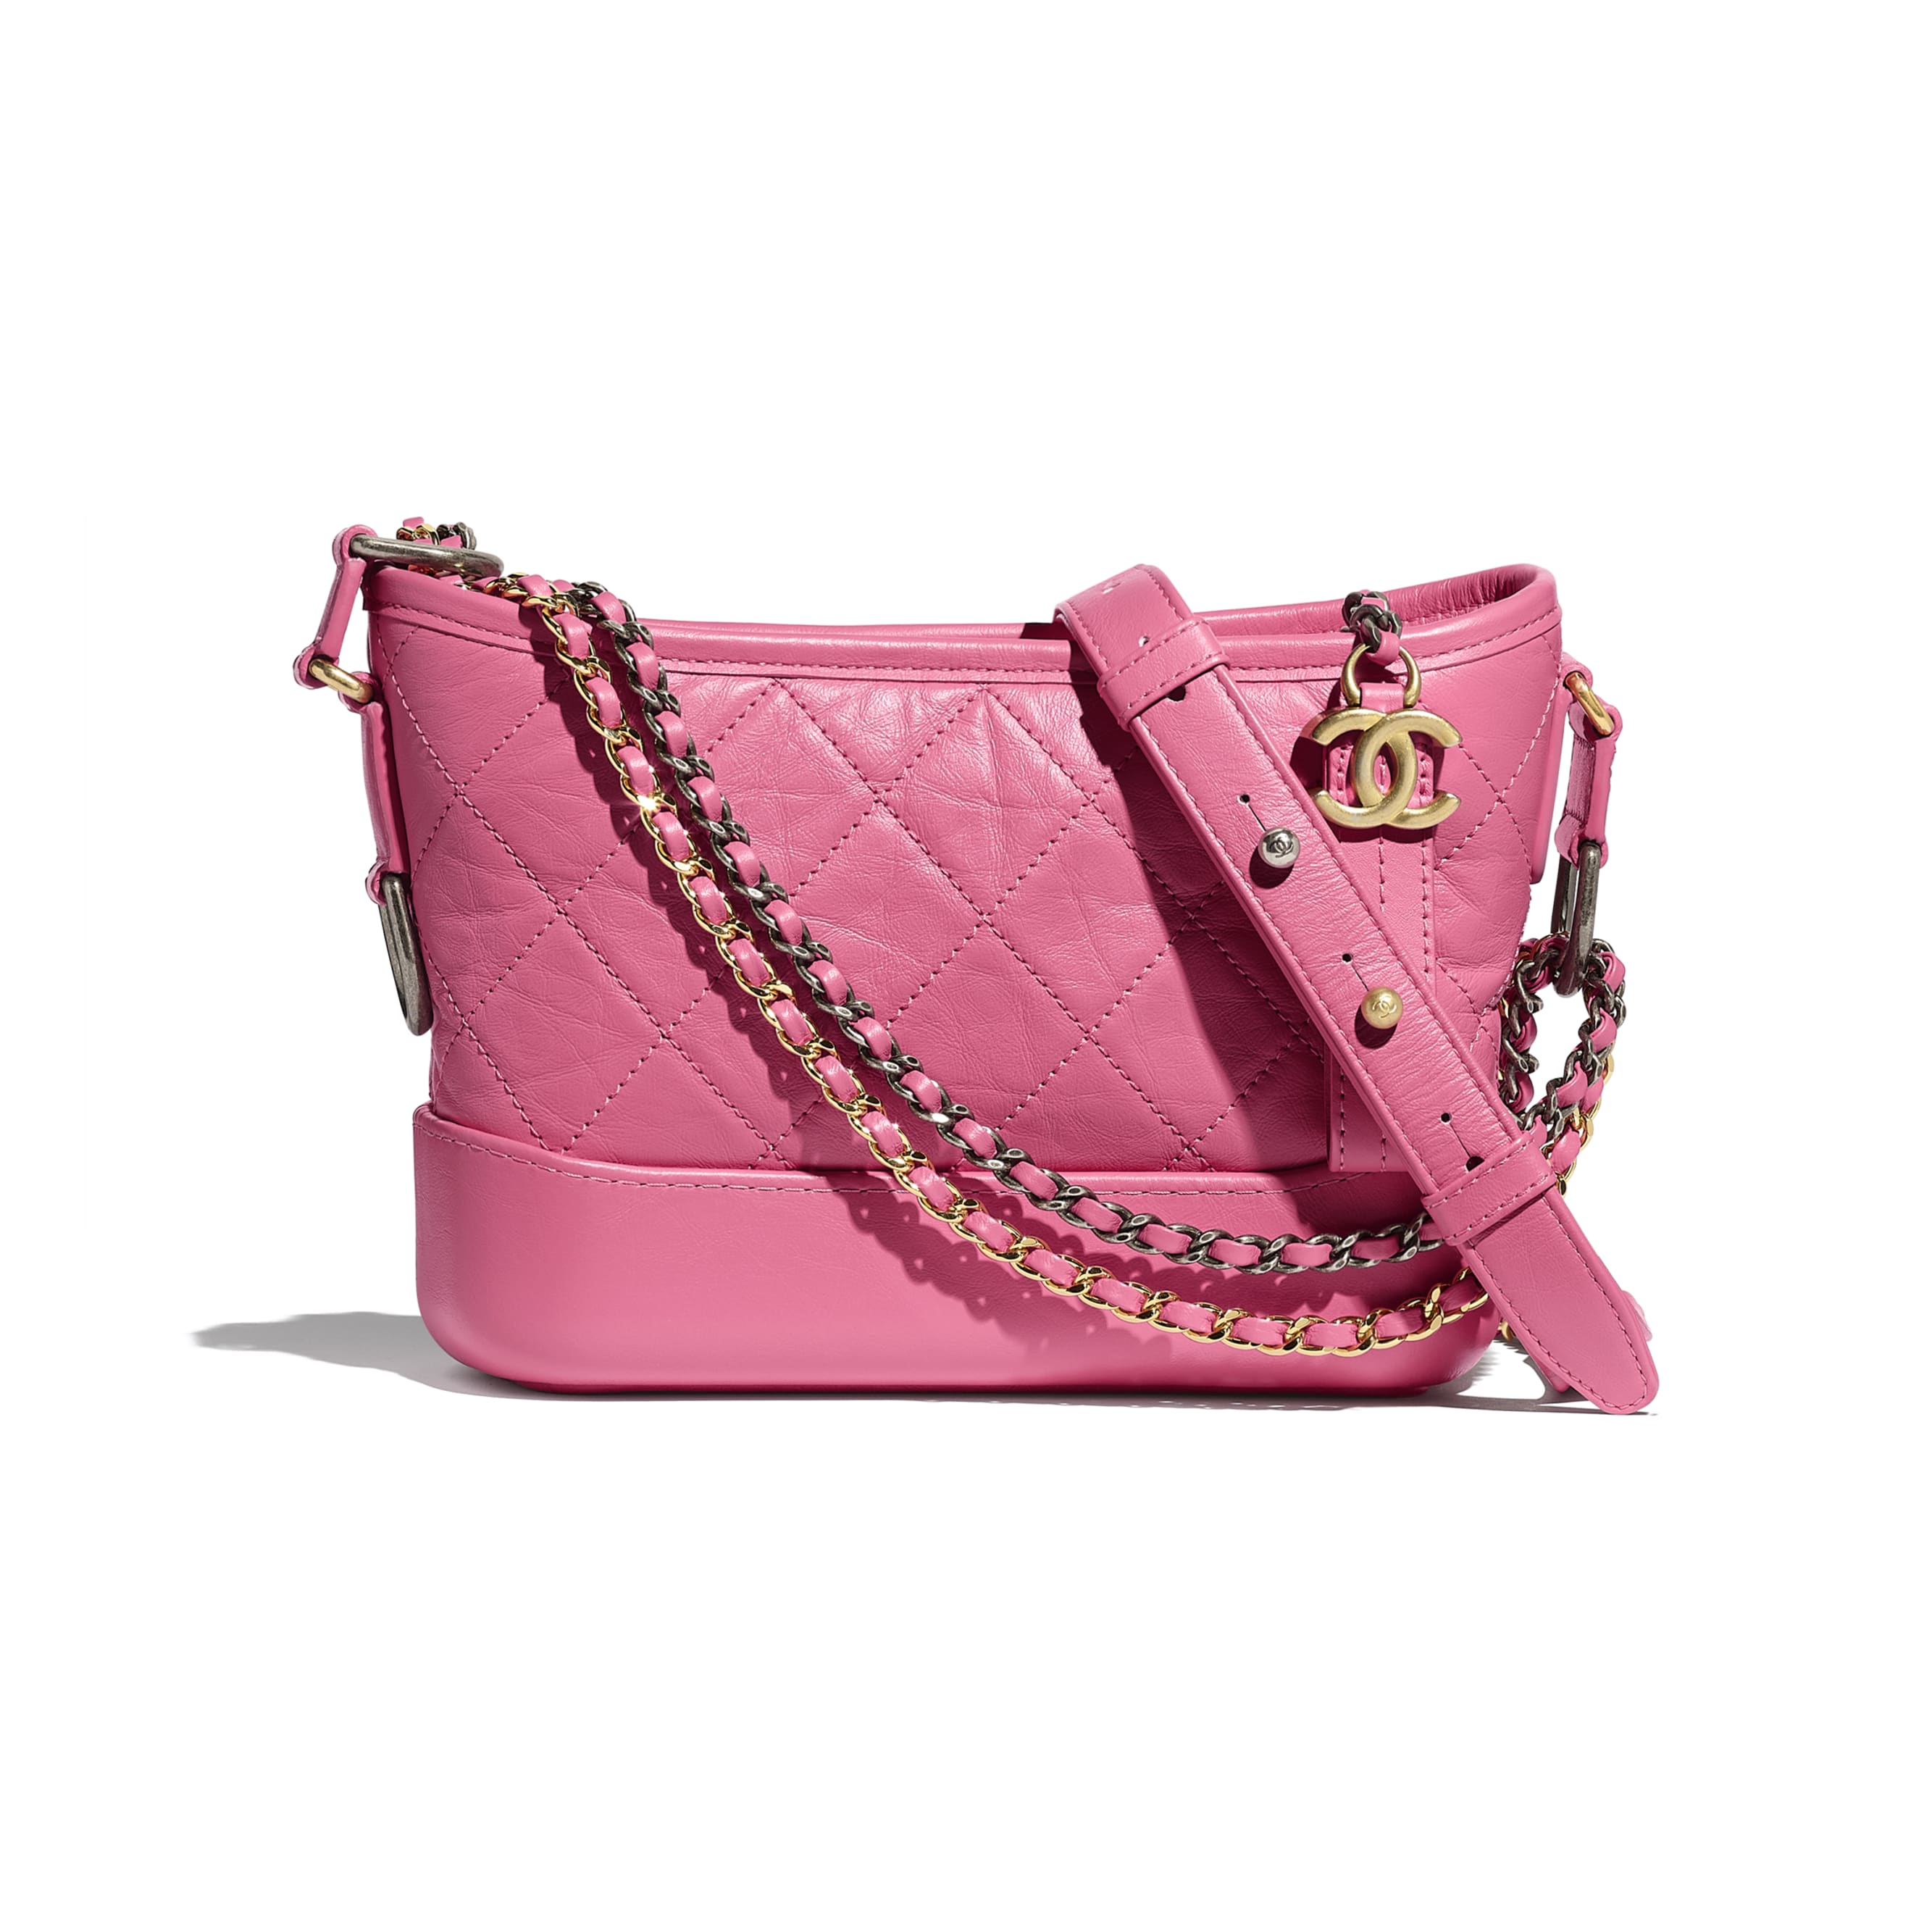 CHANEL'S GABRIELLE Small Hobo Bag - Pink - Aged Calfskin, Smooth Calfskin, Silver-Tone & Gold-Tone Metal - Default view - see standard sized version